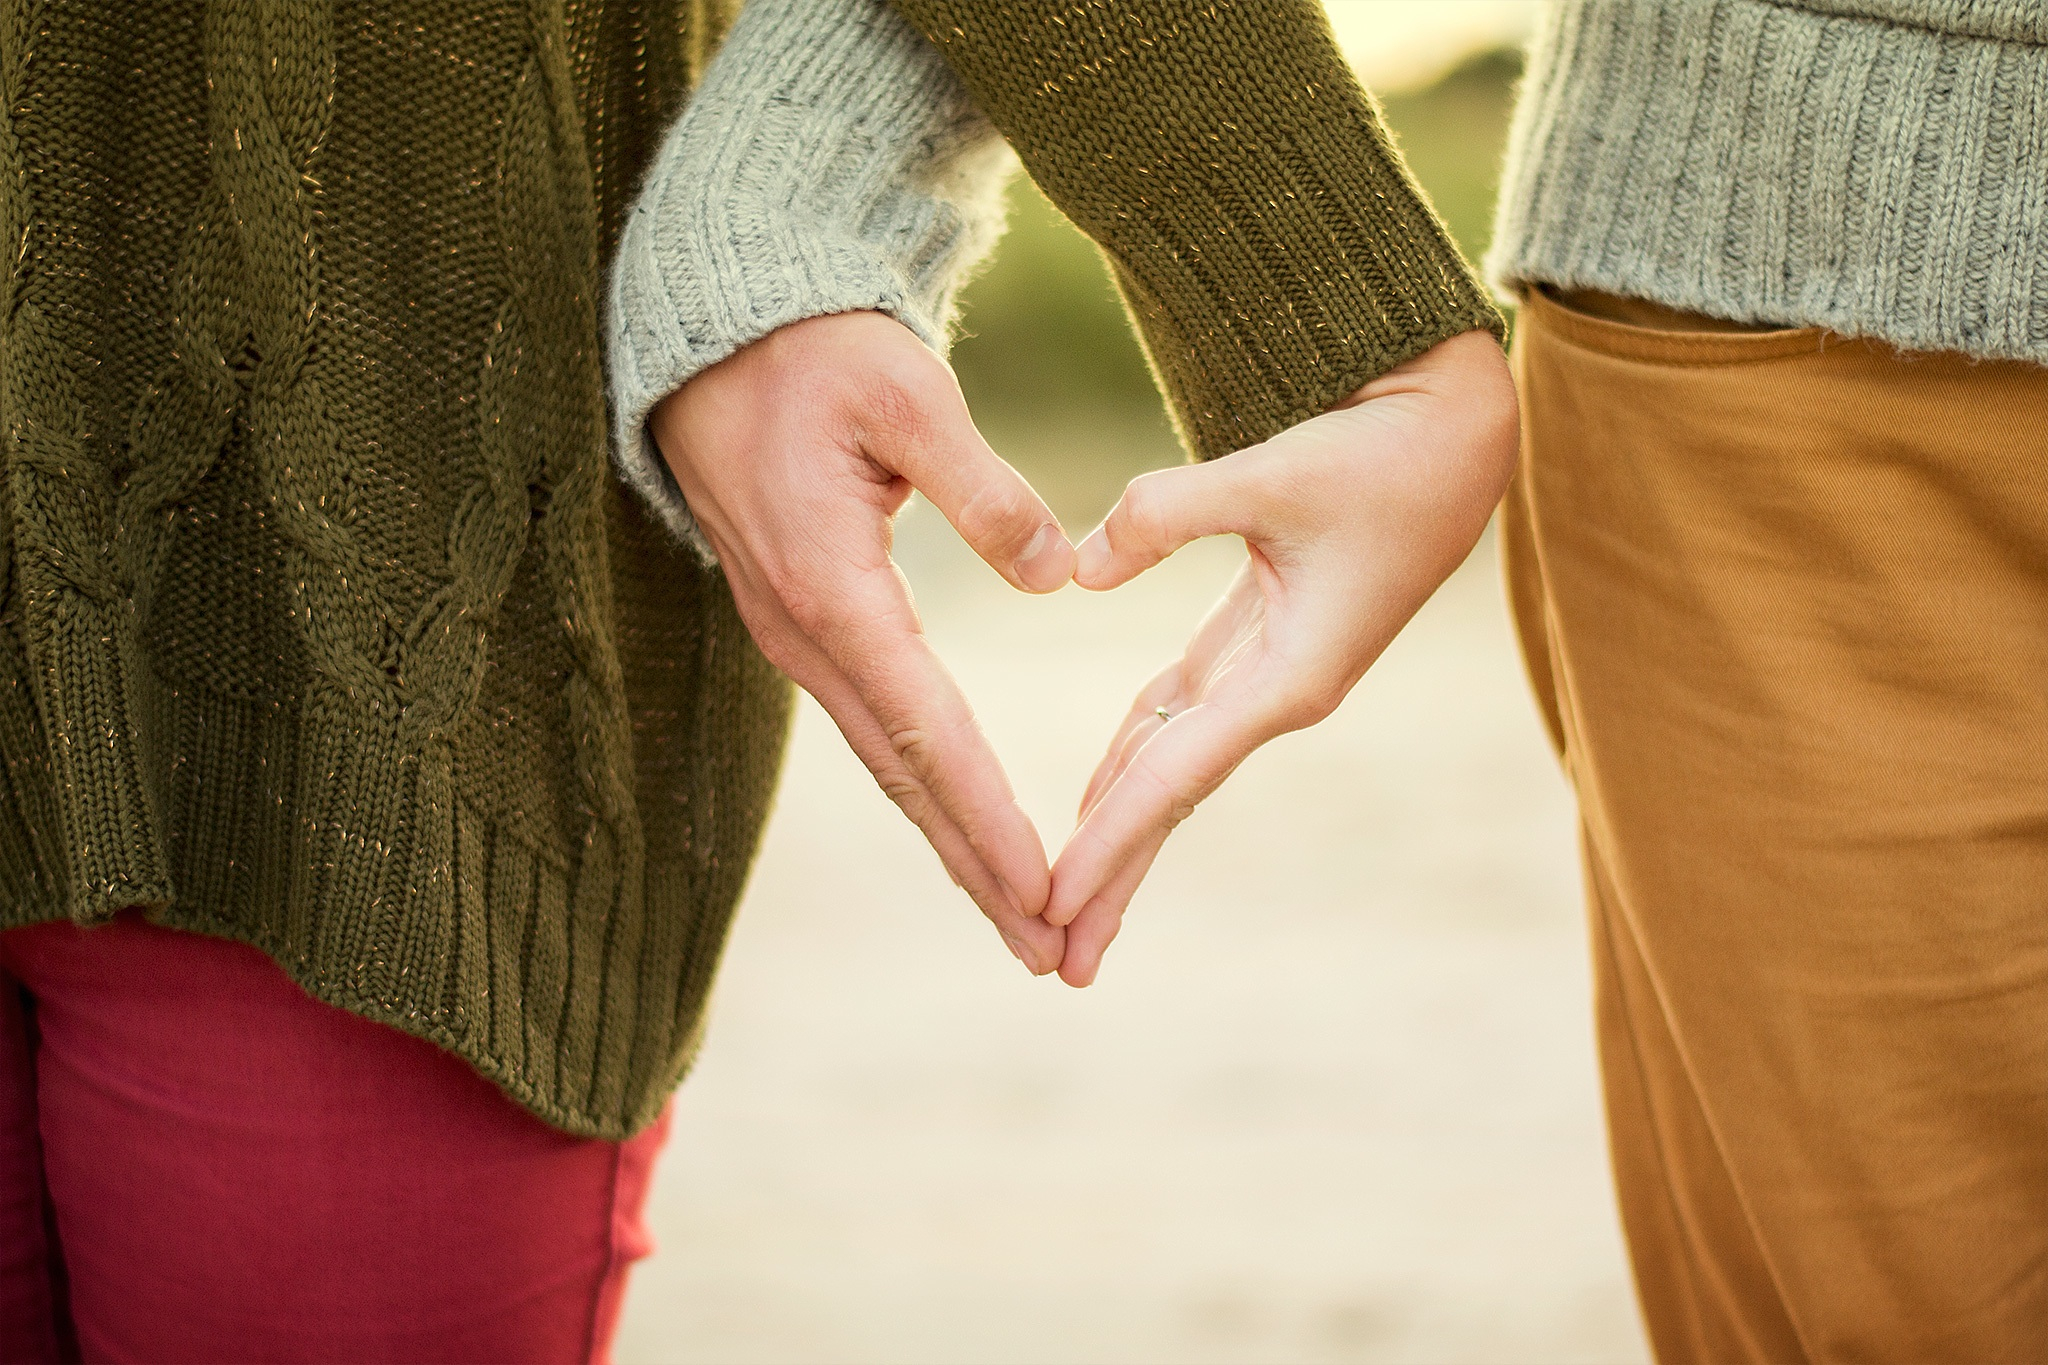 Canva - Selective Focus Photography Two Person Making Heart Hand Sign